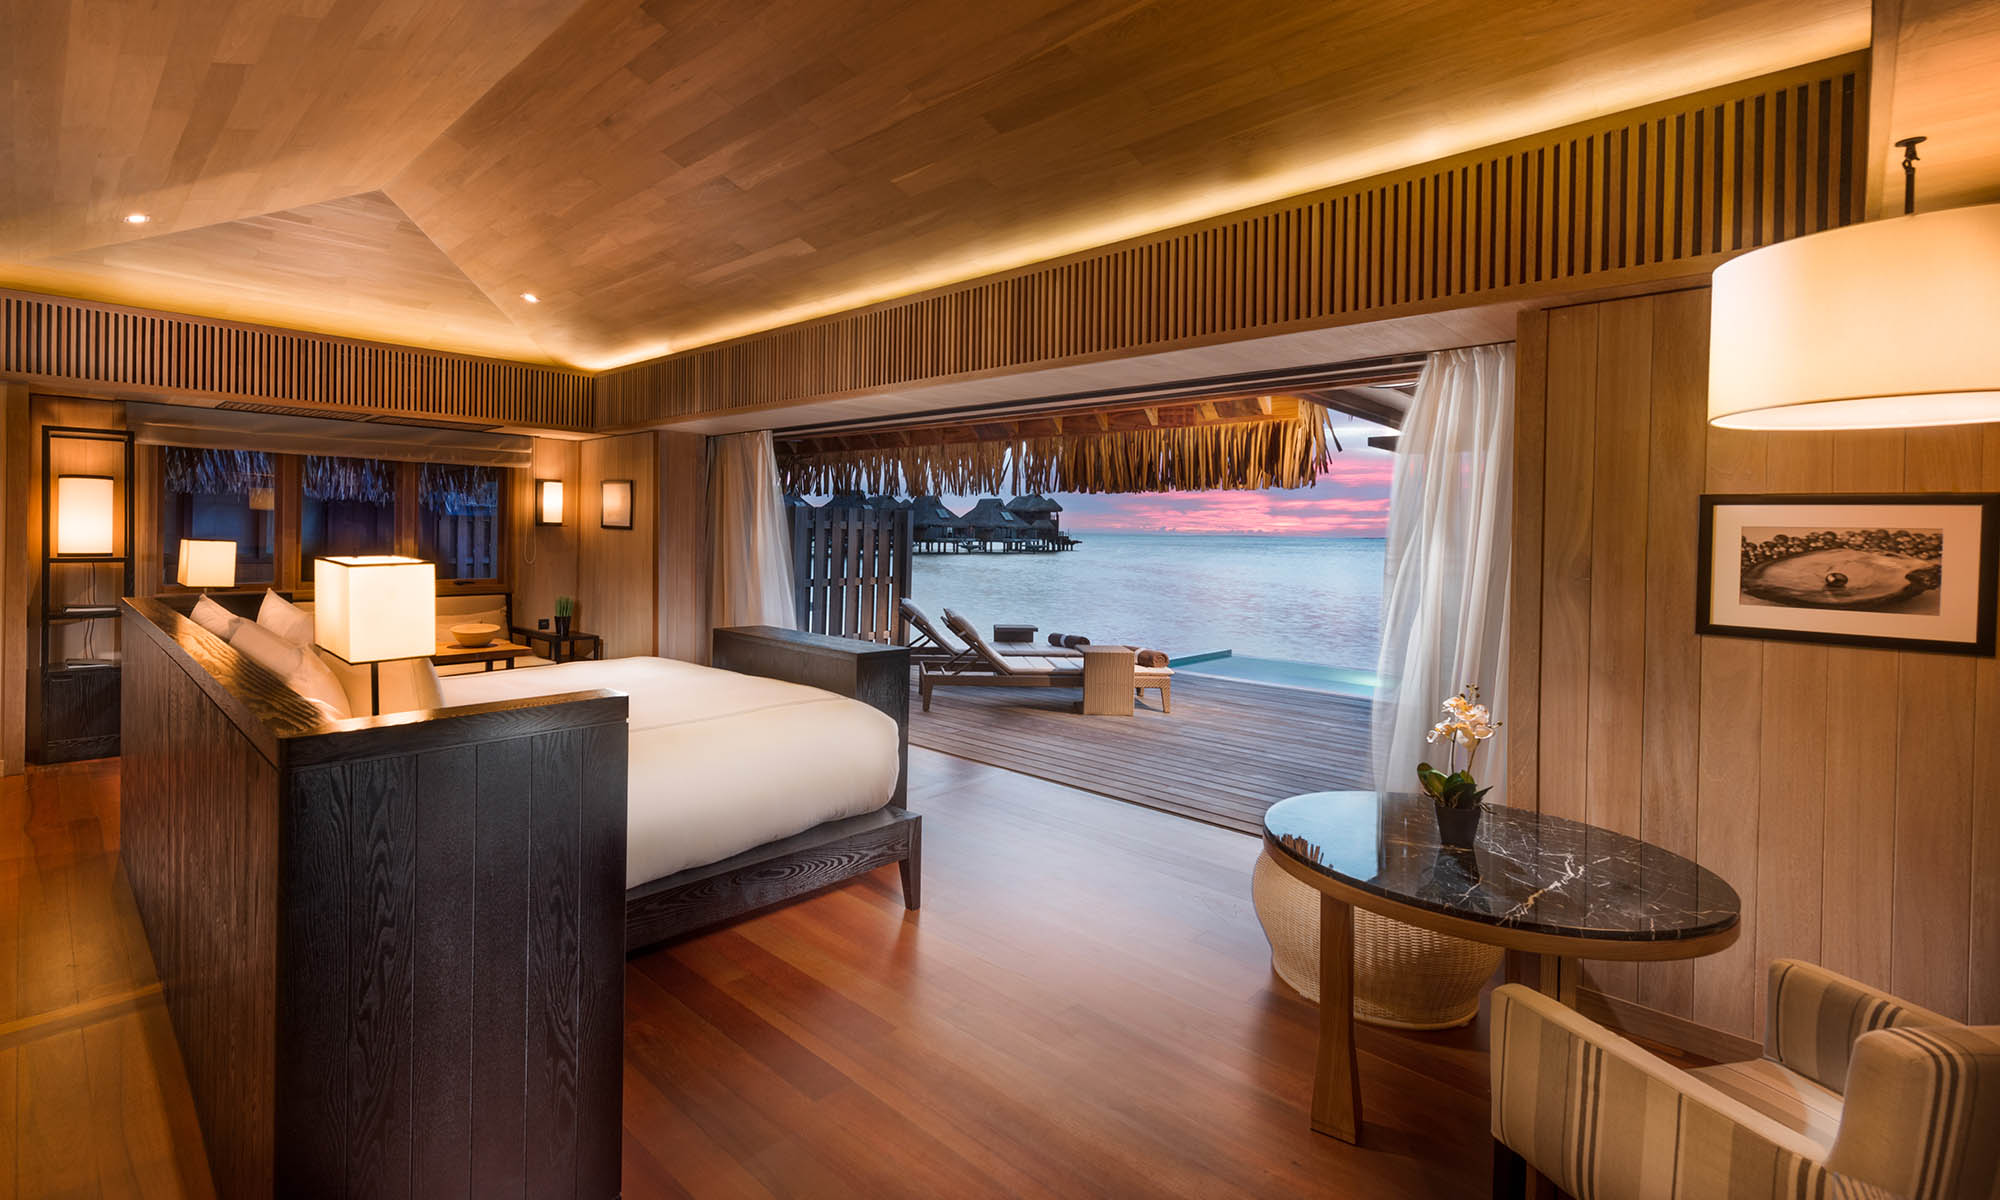 Interior of the Overwater Pool Villa at the Conrad Bora Bora Nui